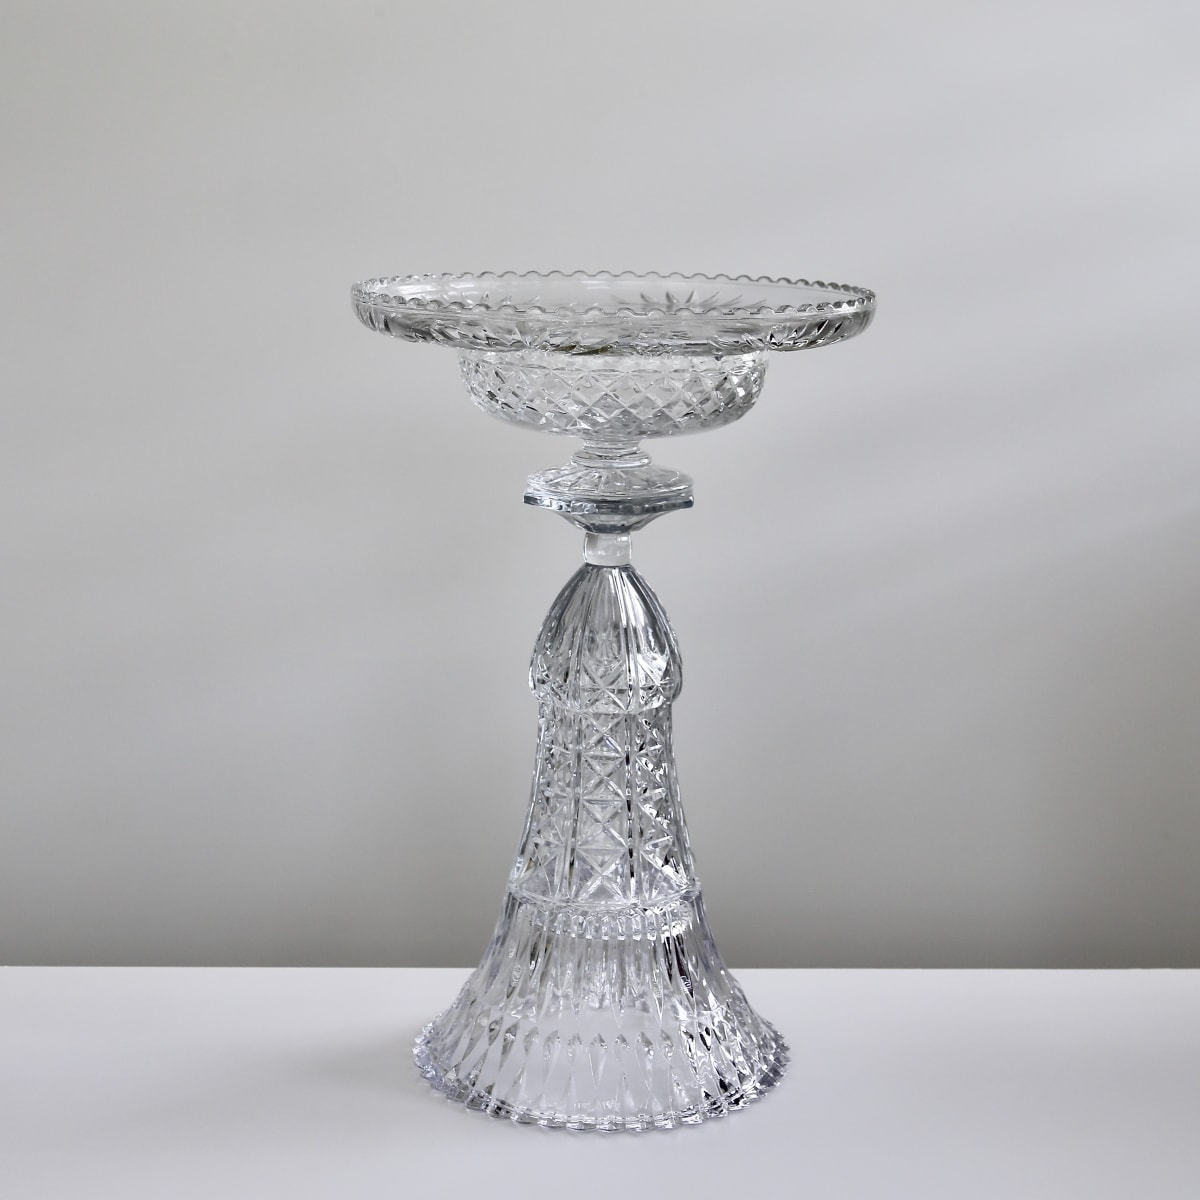 Edward Waring Champagne Table #25, 2018 Vintage Crystal and Glass, Epoxy Adhesive 34 x 53 cm